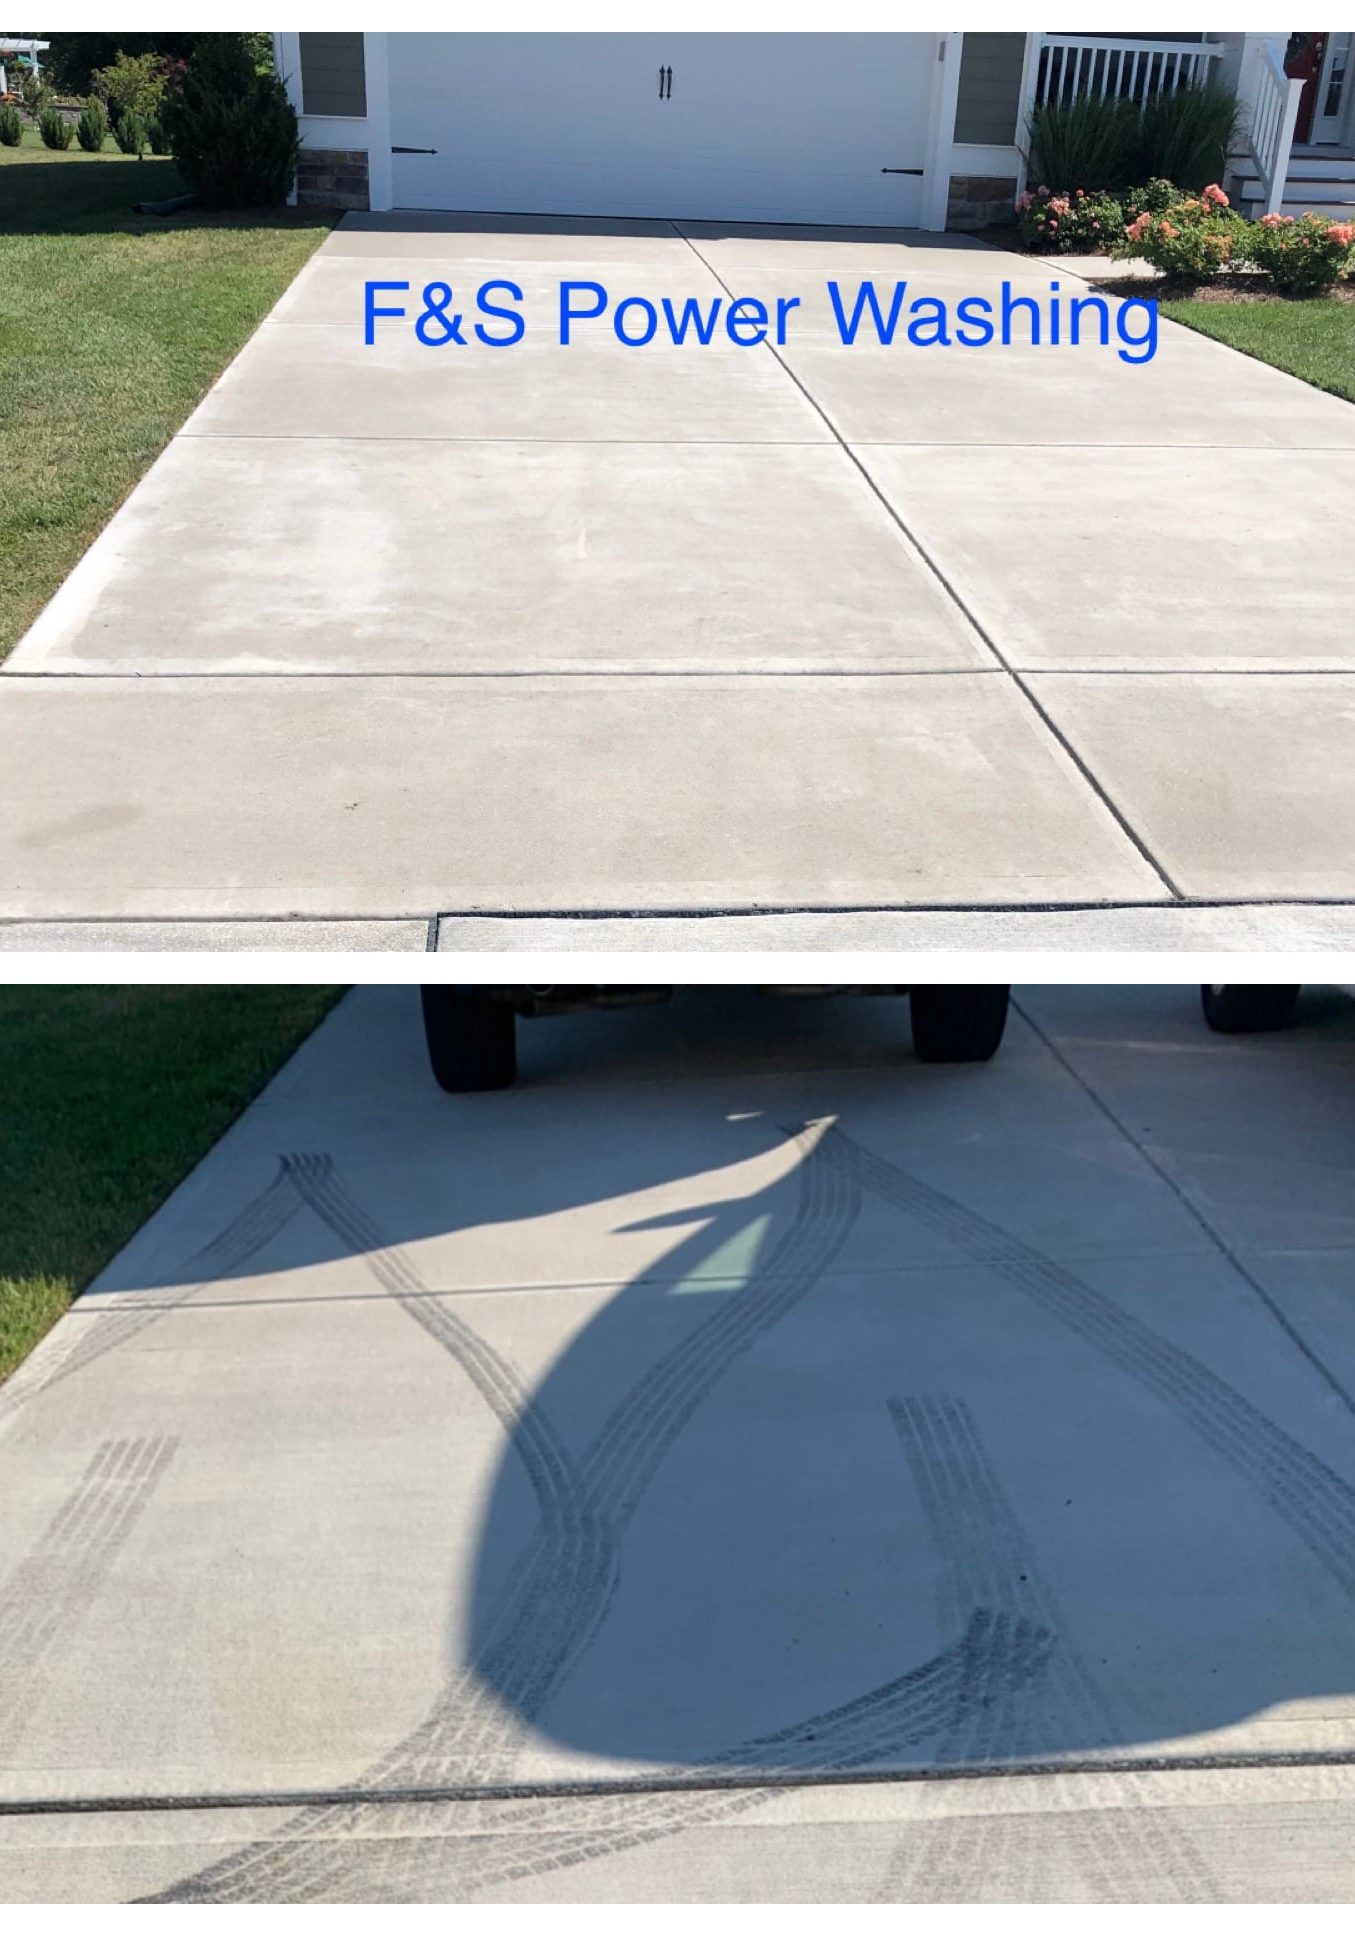 Our walkway power washing services allow you to show off your perfect home--dirt free. We offer a variety of packages that are individually suited for you and your family so that you can have the spotless home you've always dreamed of. Our walkway power washing services encompass concrete, pavers, and brick walkways.